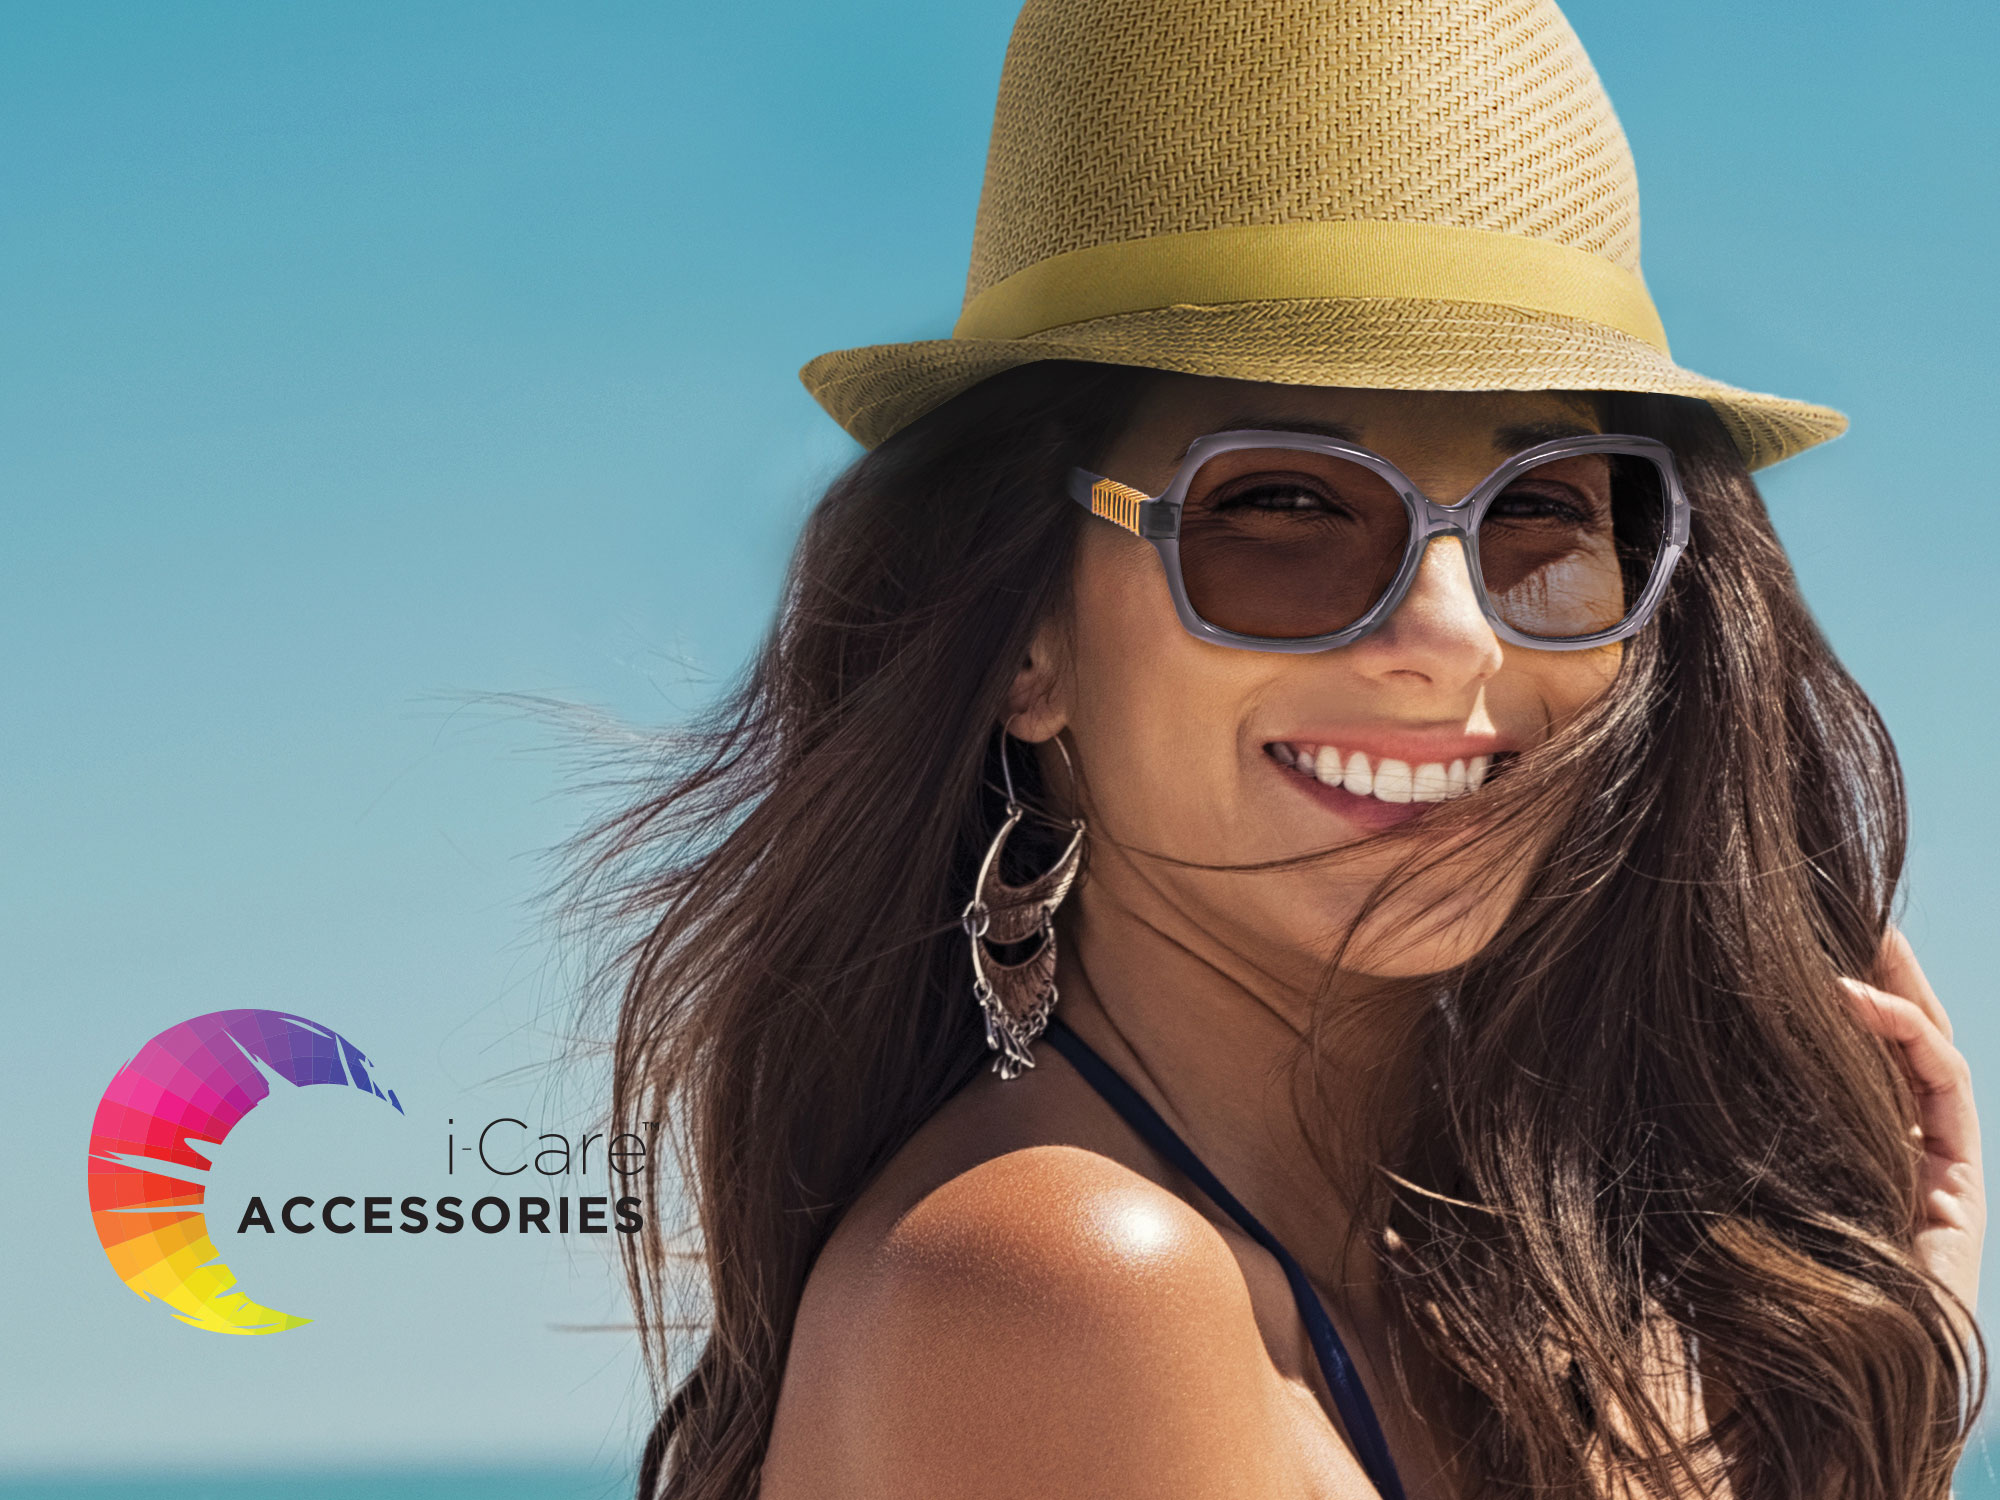 Accessories - i-Care Accessories is a collection of Winter & Summer apparel accessories, offering styles to suit every member of the family. The range includes an extensive variety of hats, scarves and gloves in on-trend designs made in high quality materials to ensure maximum style and value.